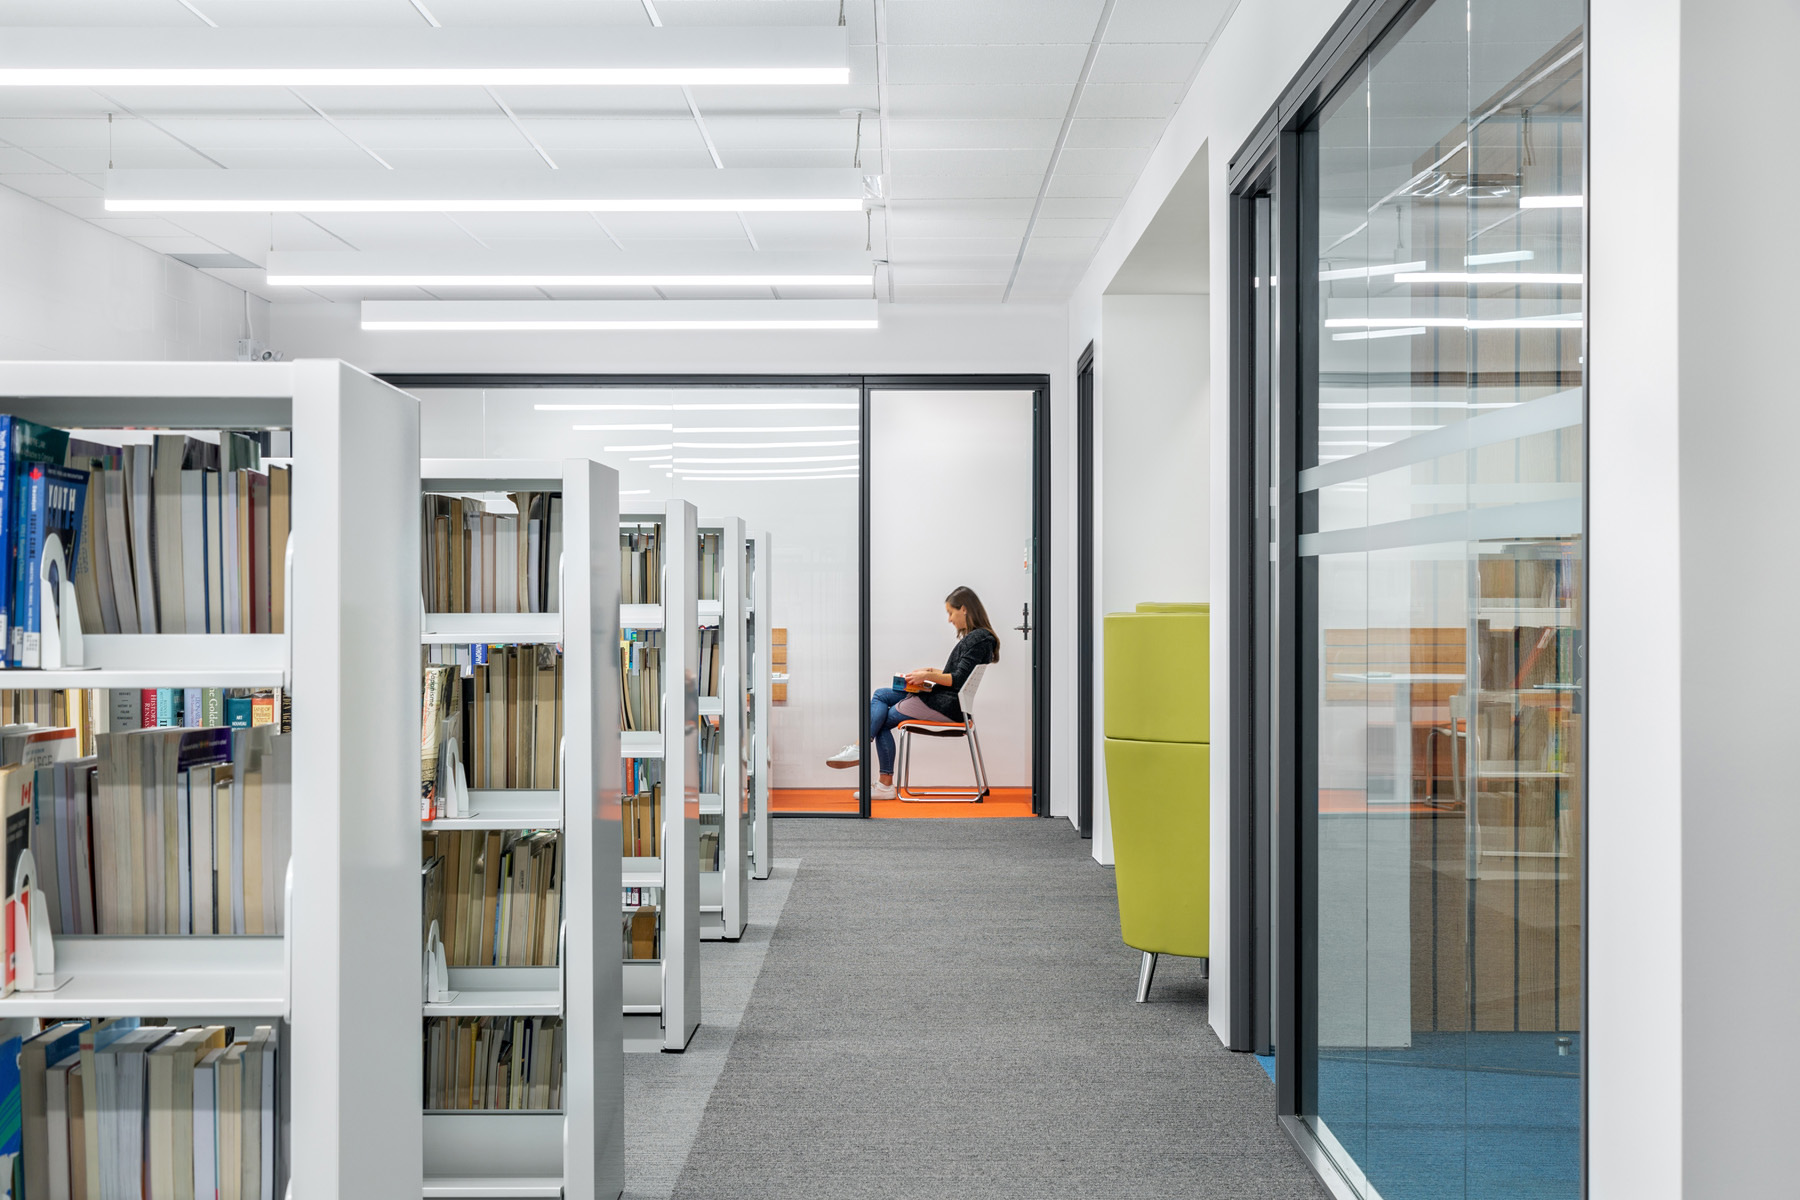 Student reading in private glazed study room at end of corridor with white bookshelves on left and glazed meeting room on right